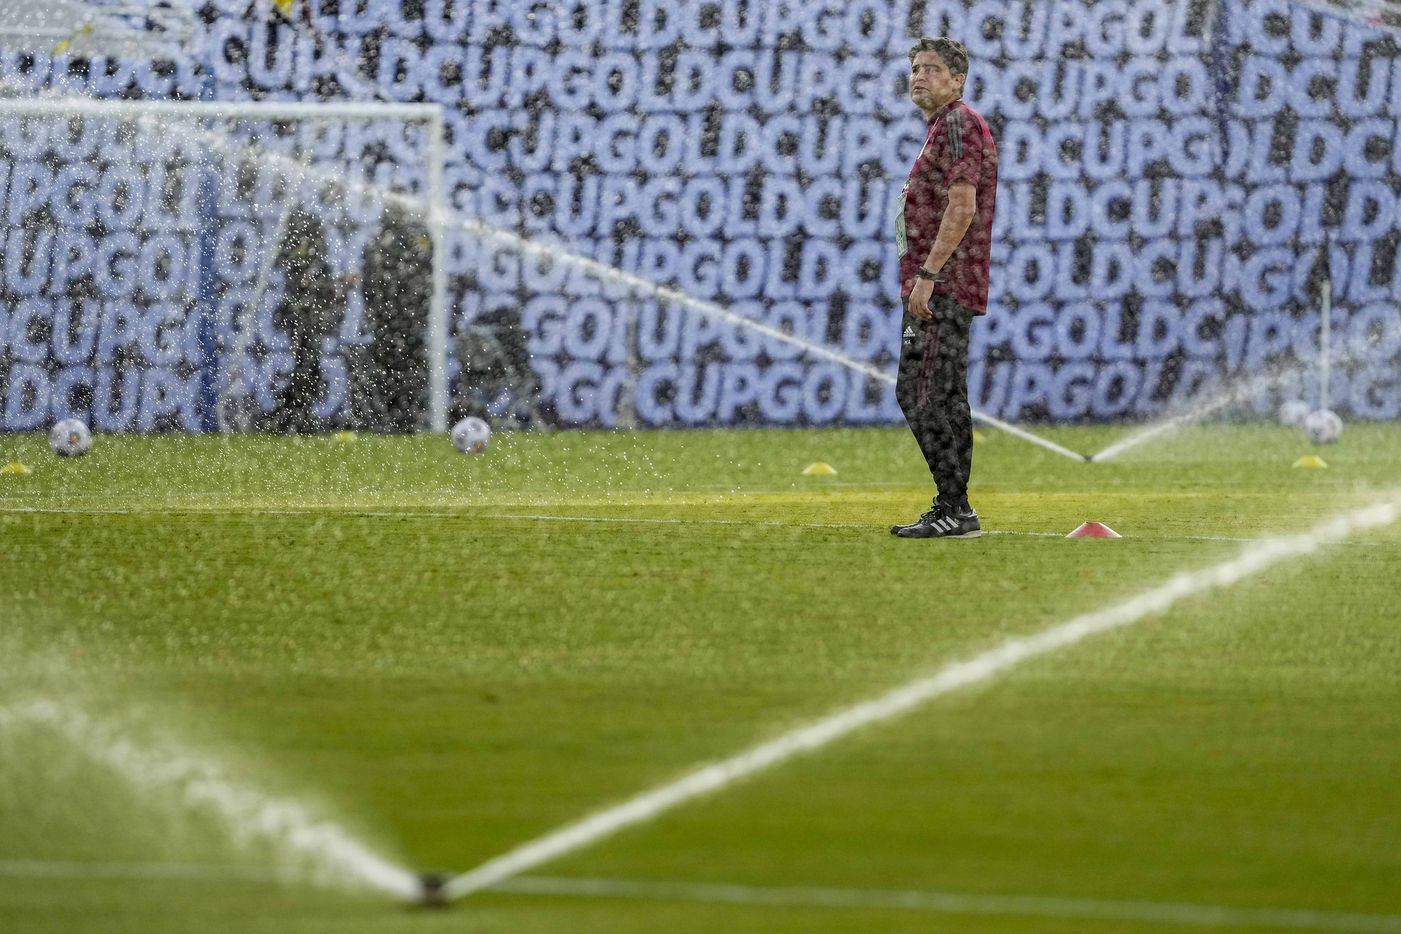 Mexico staff prepare for warmups as water sprays on the field before a CONCACAF Gold Cup Group A soccer match against Guatemala at the Cotton Bowl on Wednesday, July 14, 2021, in Dallas.